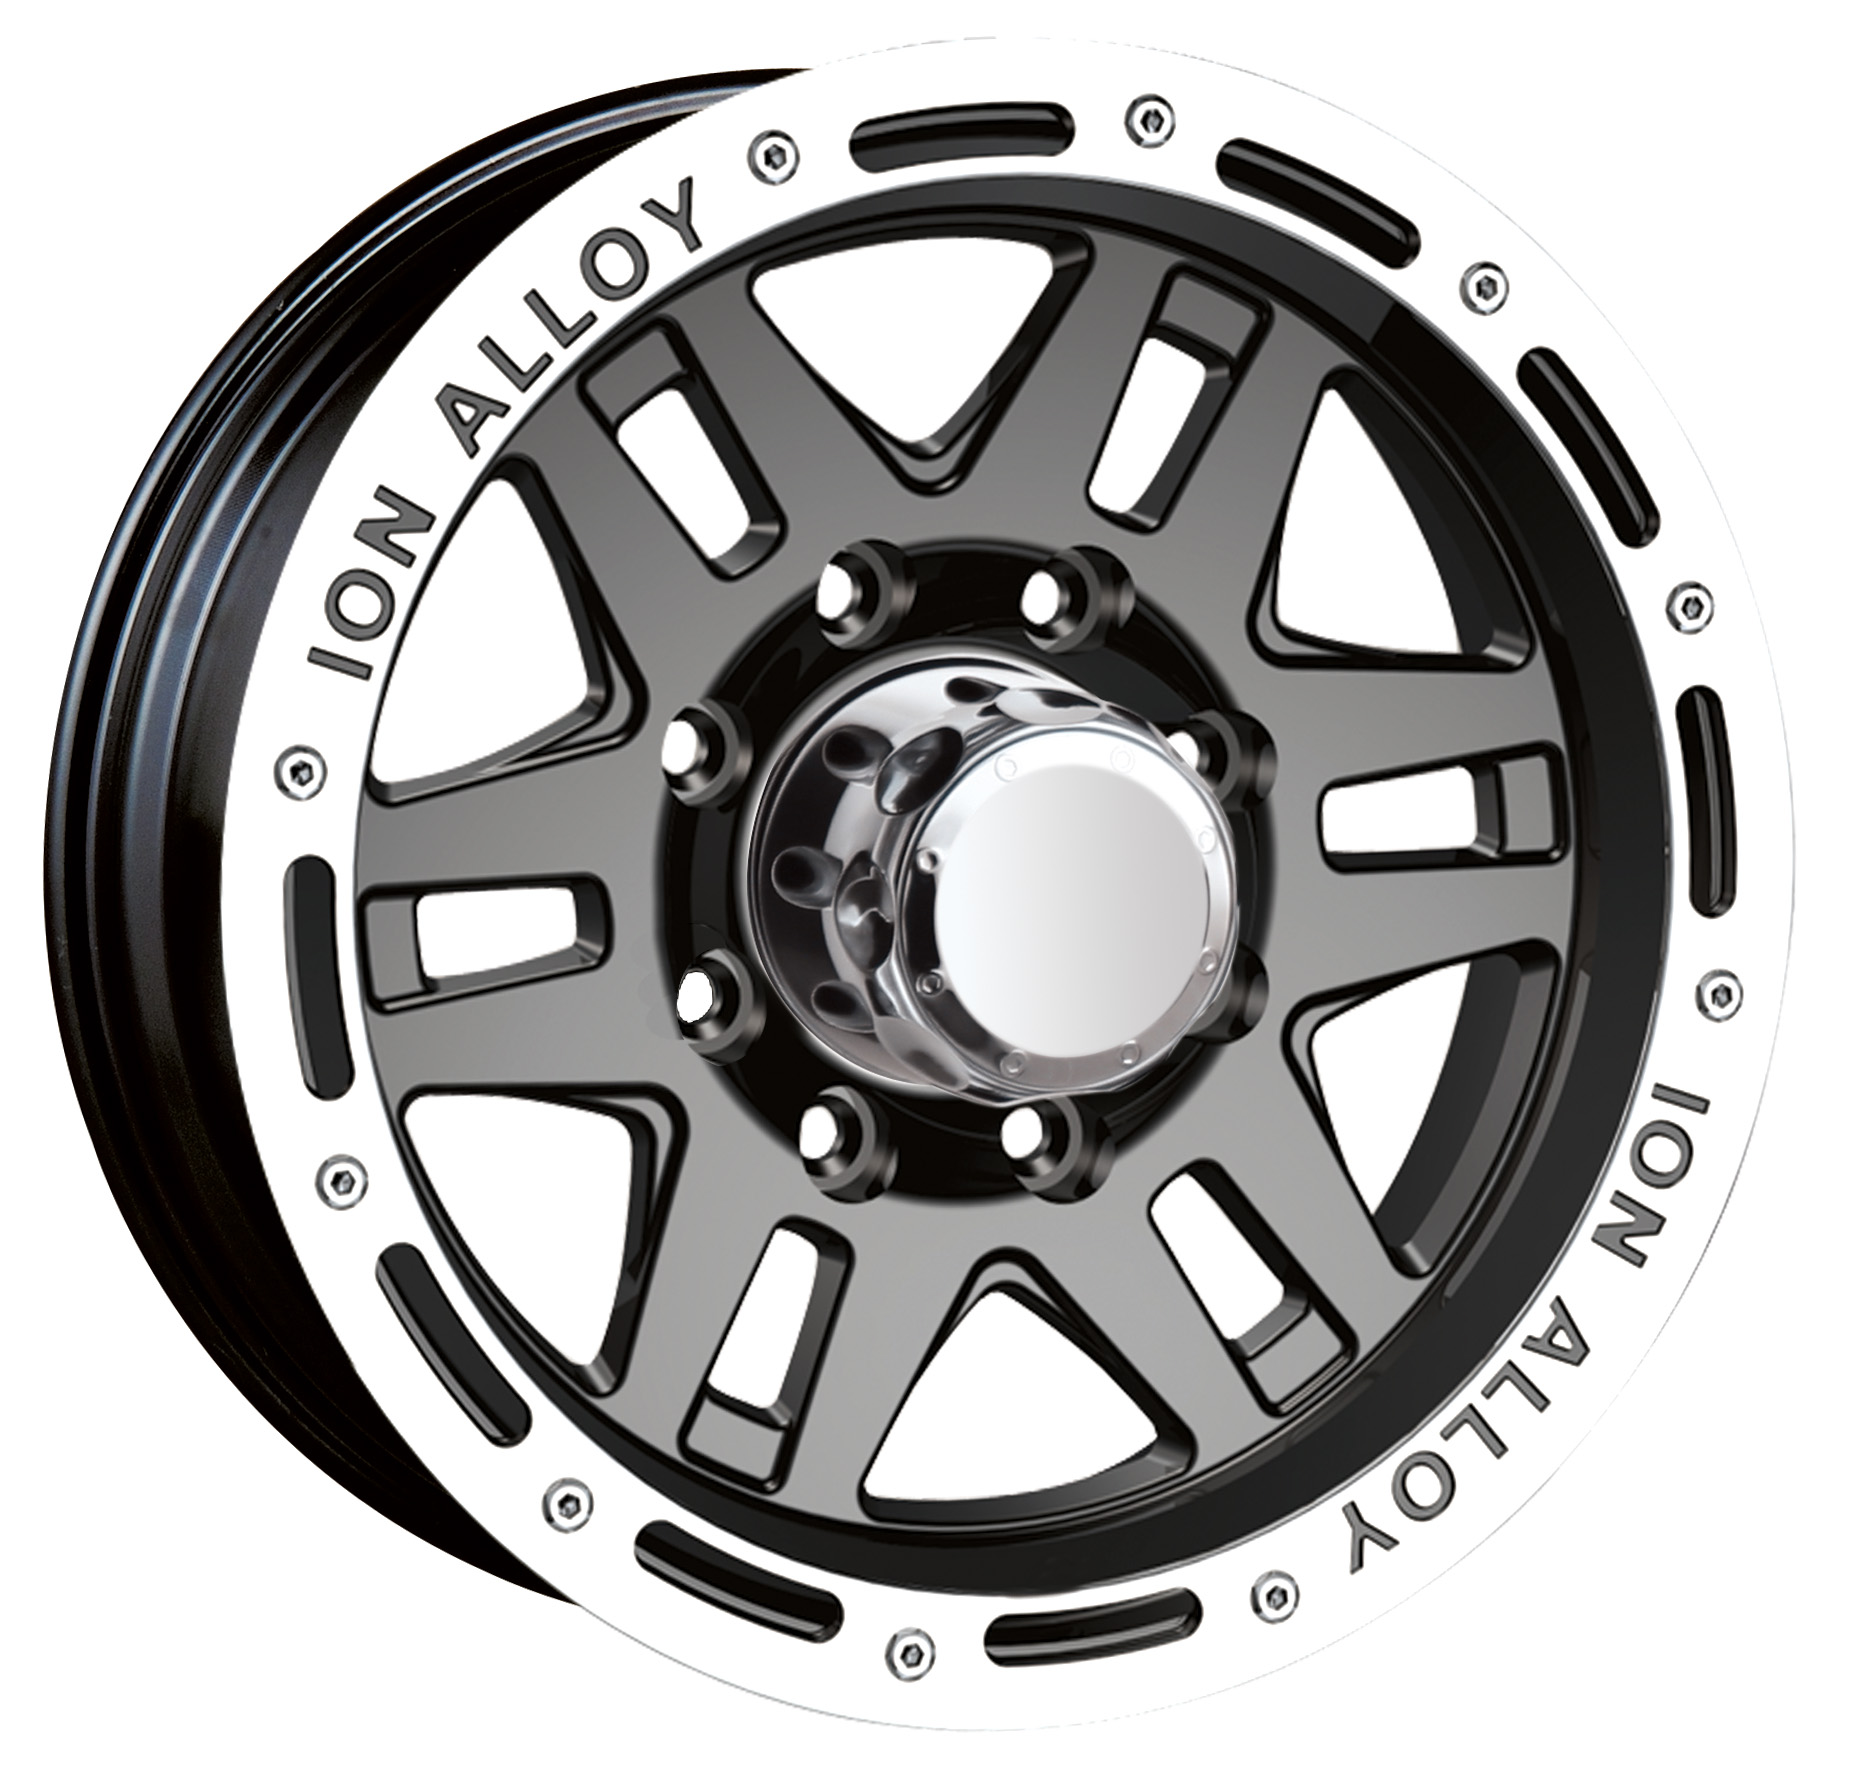 ION Alloy 133